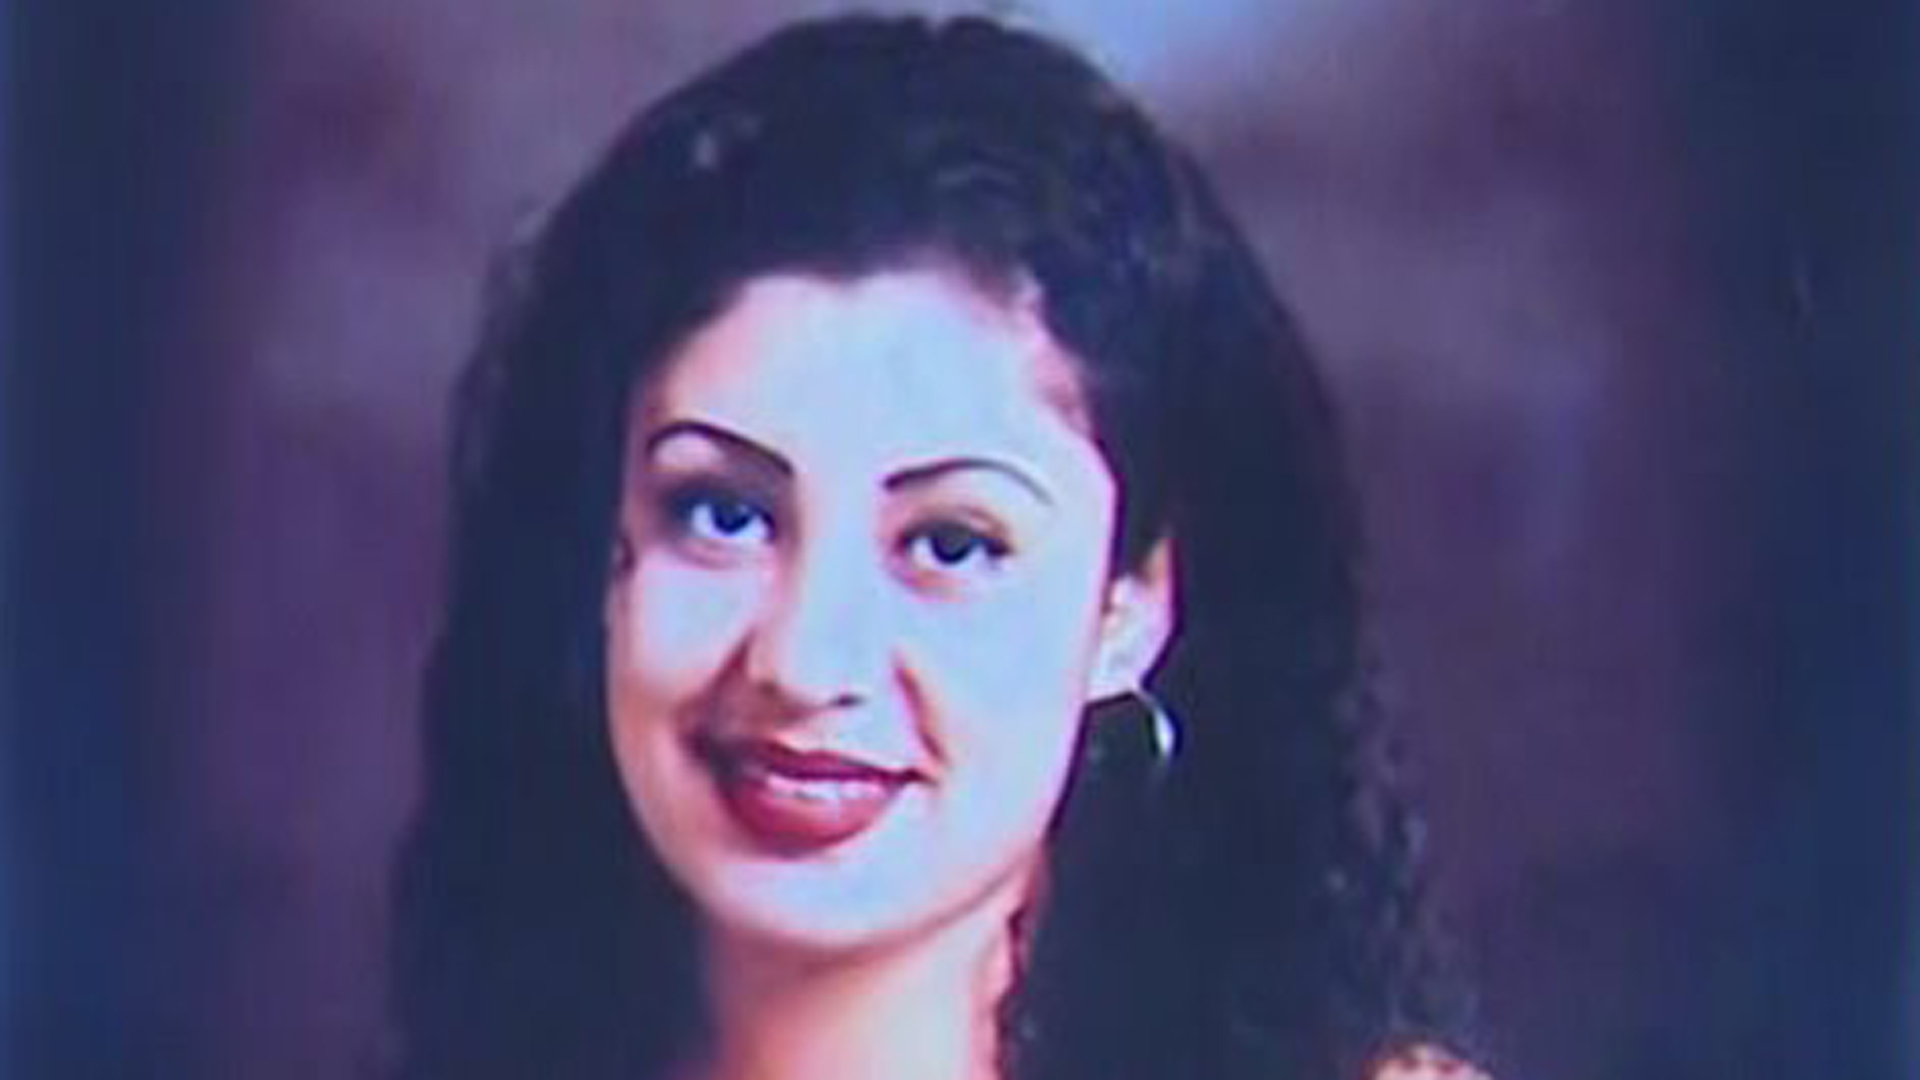 Gladys Arellano is shown in an undated photo released by the Los Angeles County Sheriff's Department on Oct. 21, 2020. (KTLA)